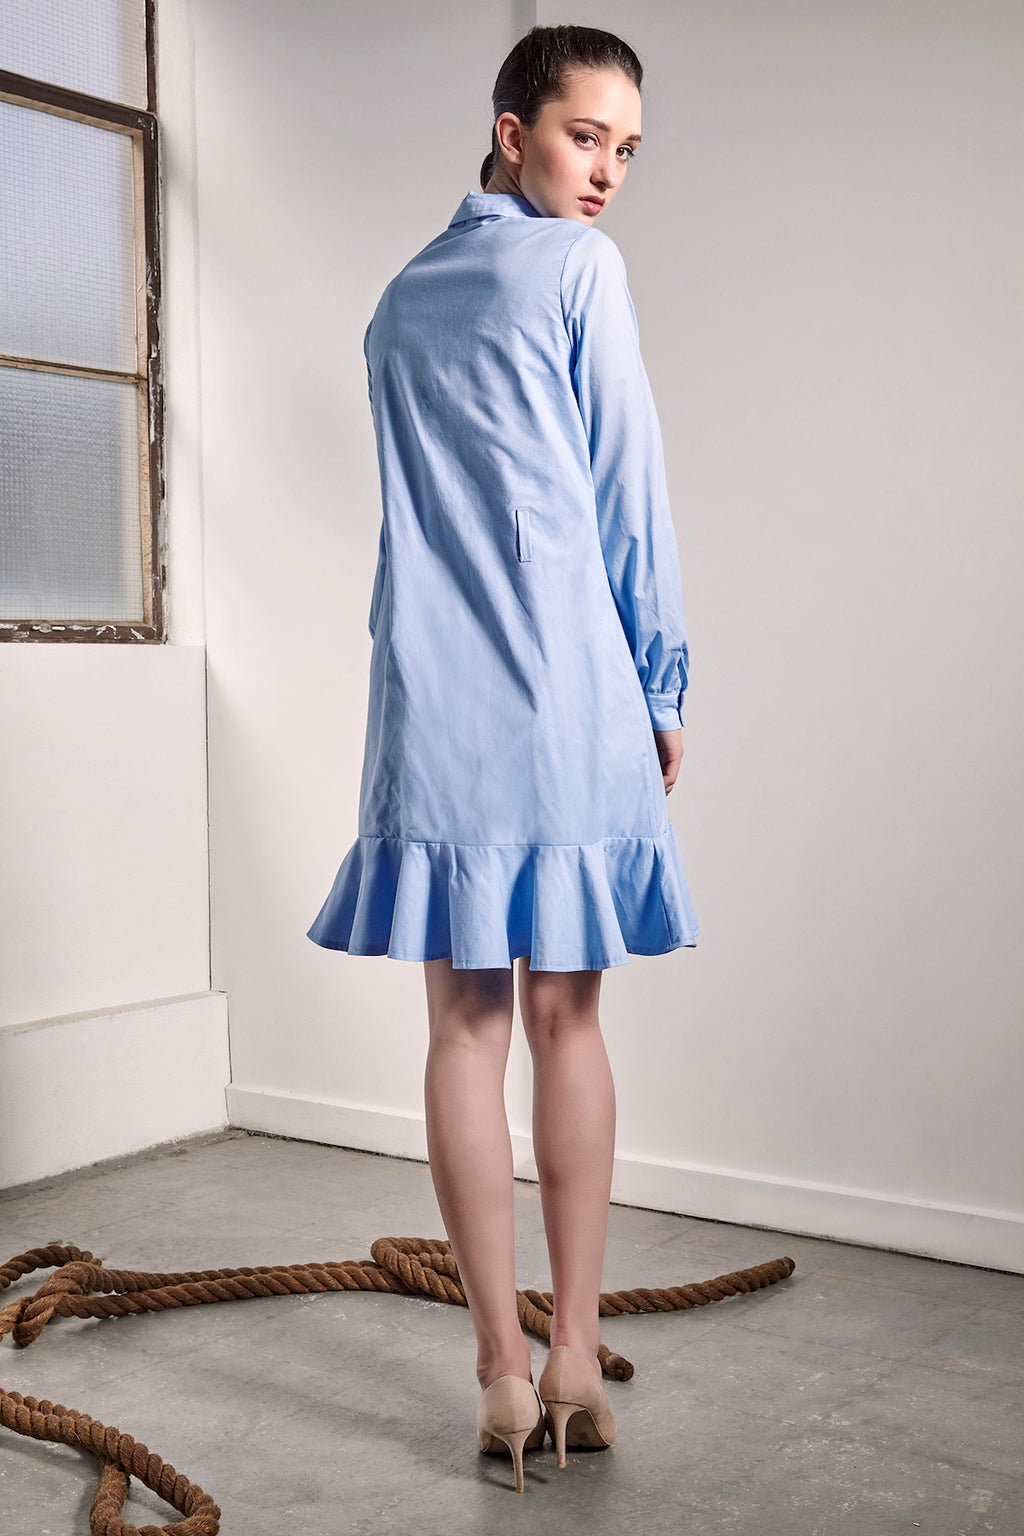 Baby Blue Uji Dress - Dresses - The Fashion Advocate - Ethical Australian fashion online like - Melbourne fashion blogger